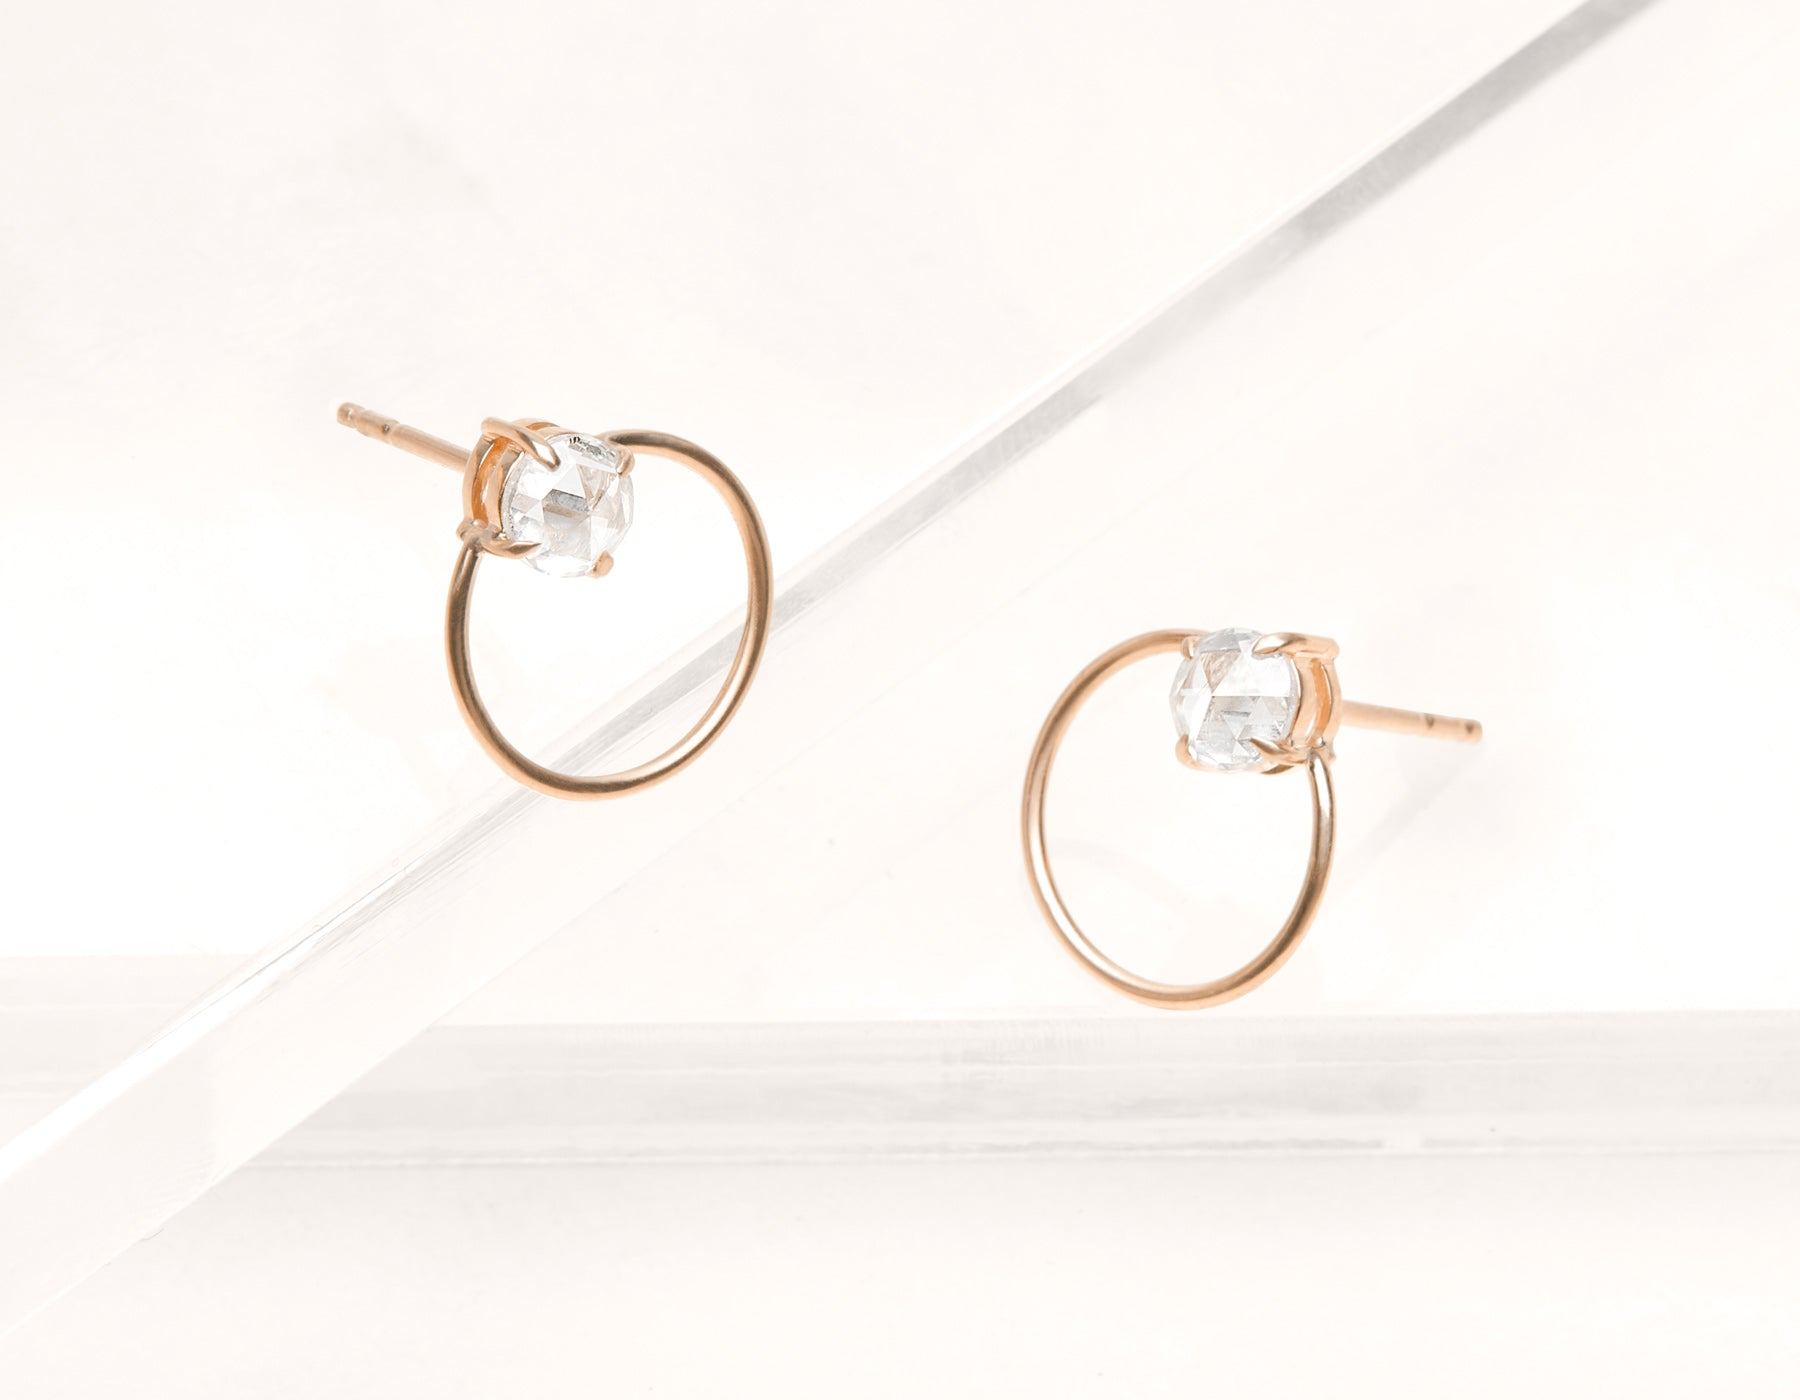 Minimalist elegant 18k solid gold rose cut Diamond Door Knock Studs hoop earring Vrai & Oro black label, 18K Rose Gold